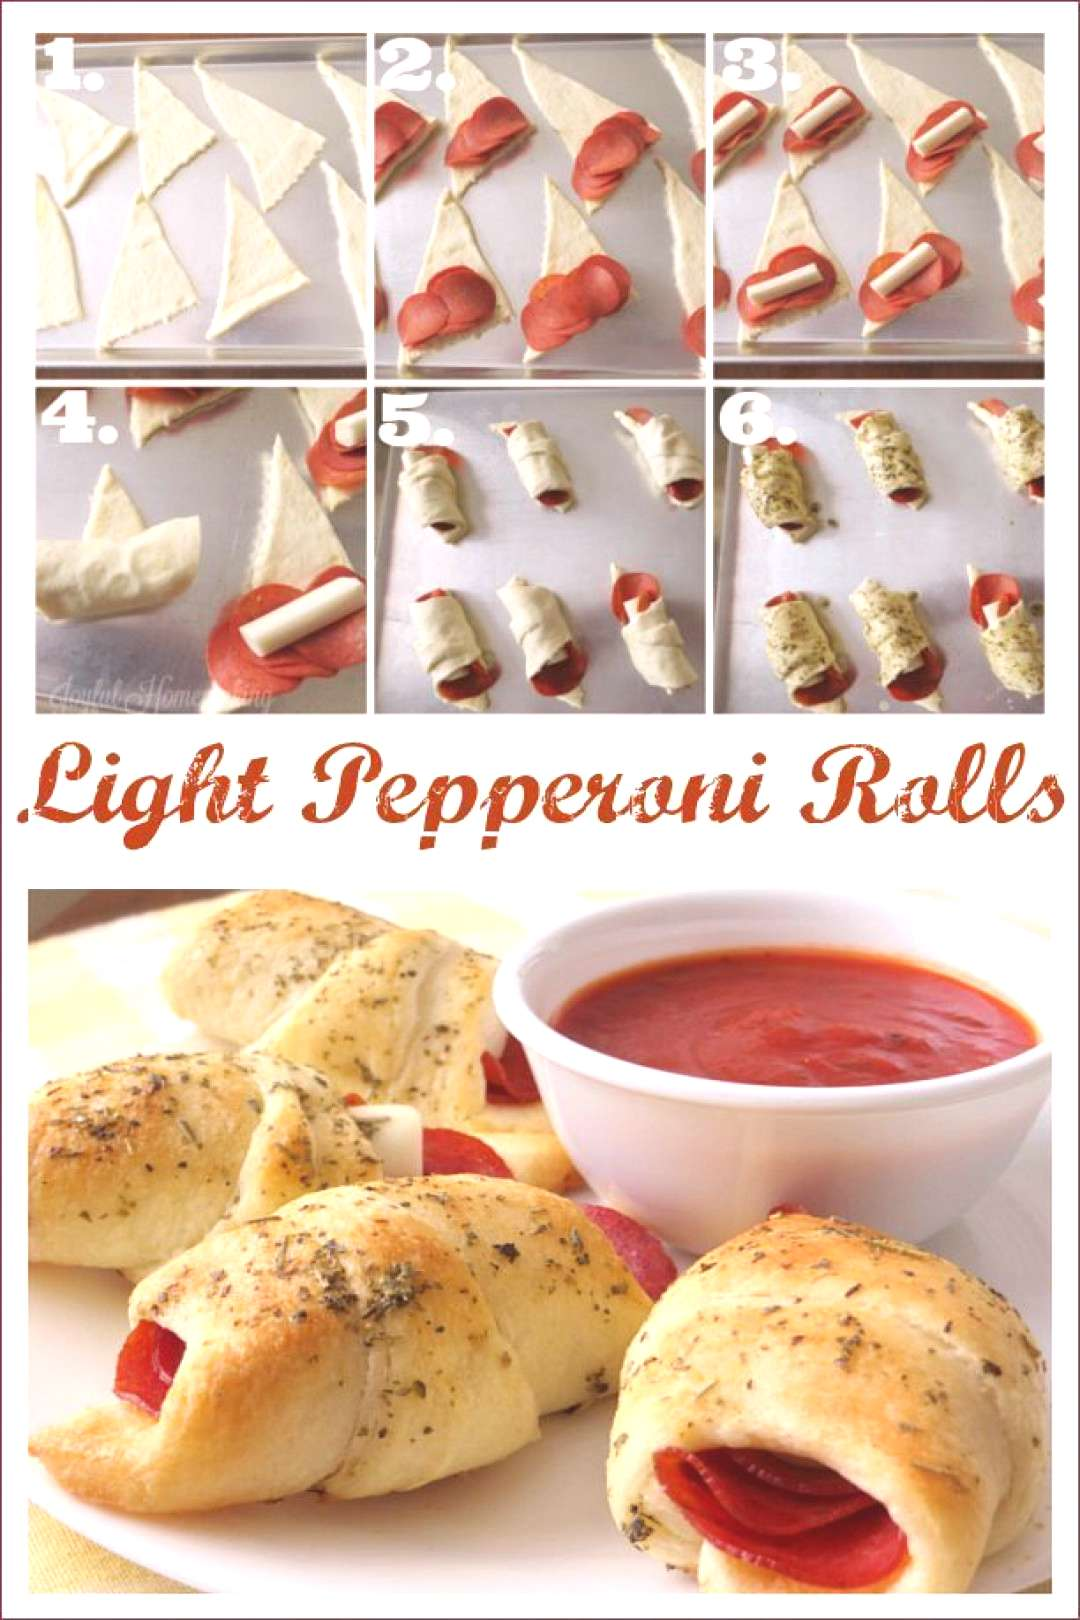 Lower Fat Pepperoni Pizza Crescent Roll Ups Lower Fat Pepperoni Pizza Crescent Roll Ups